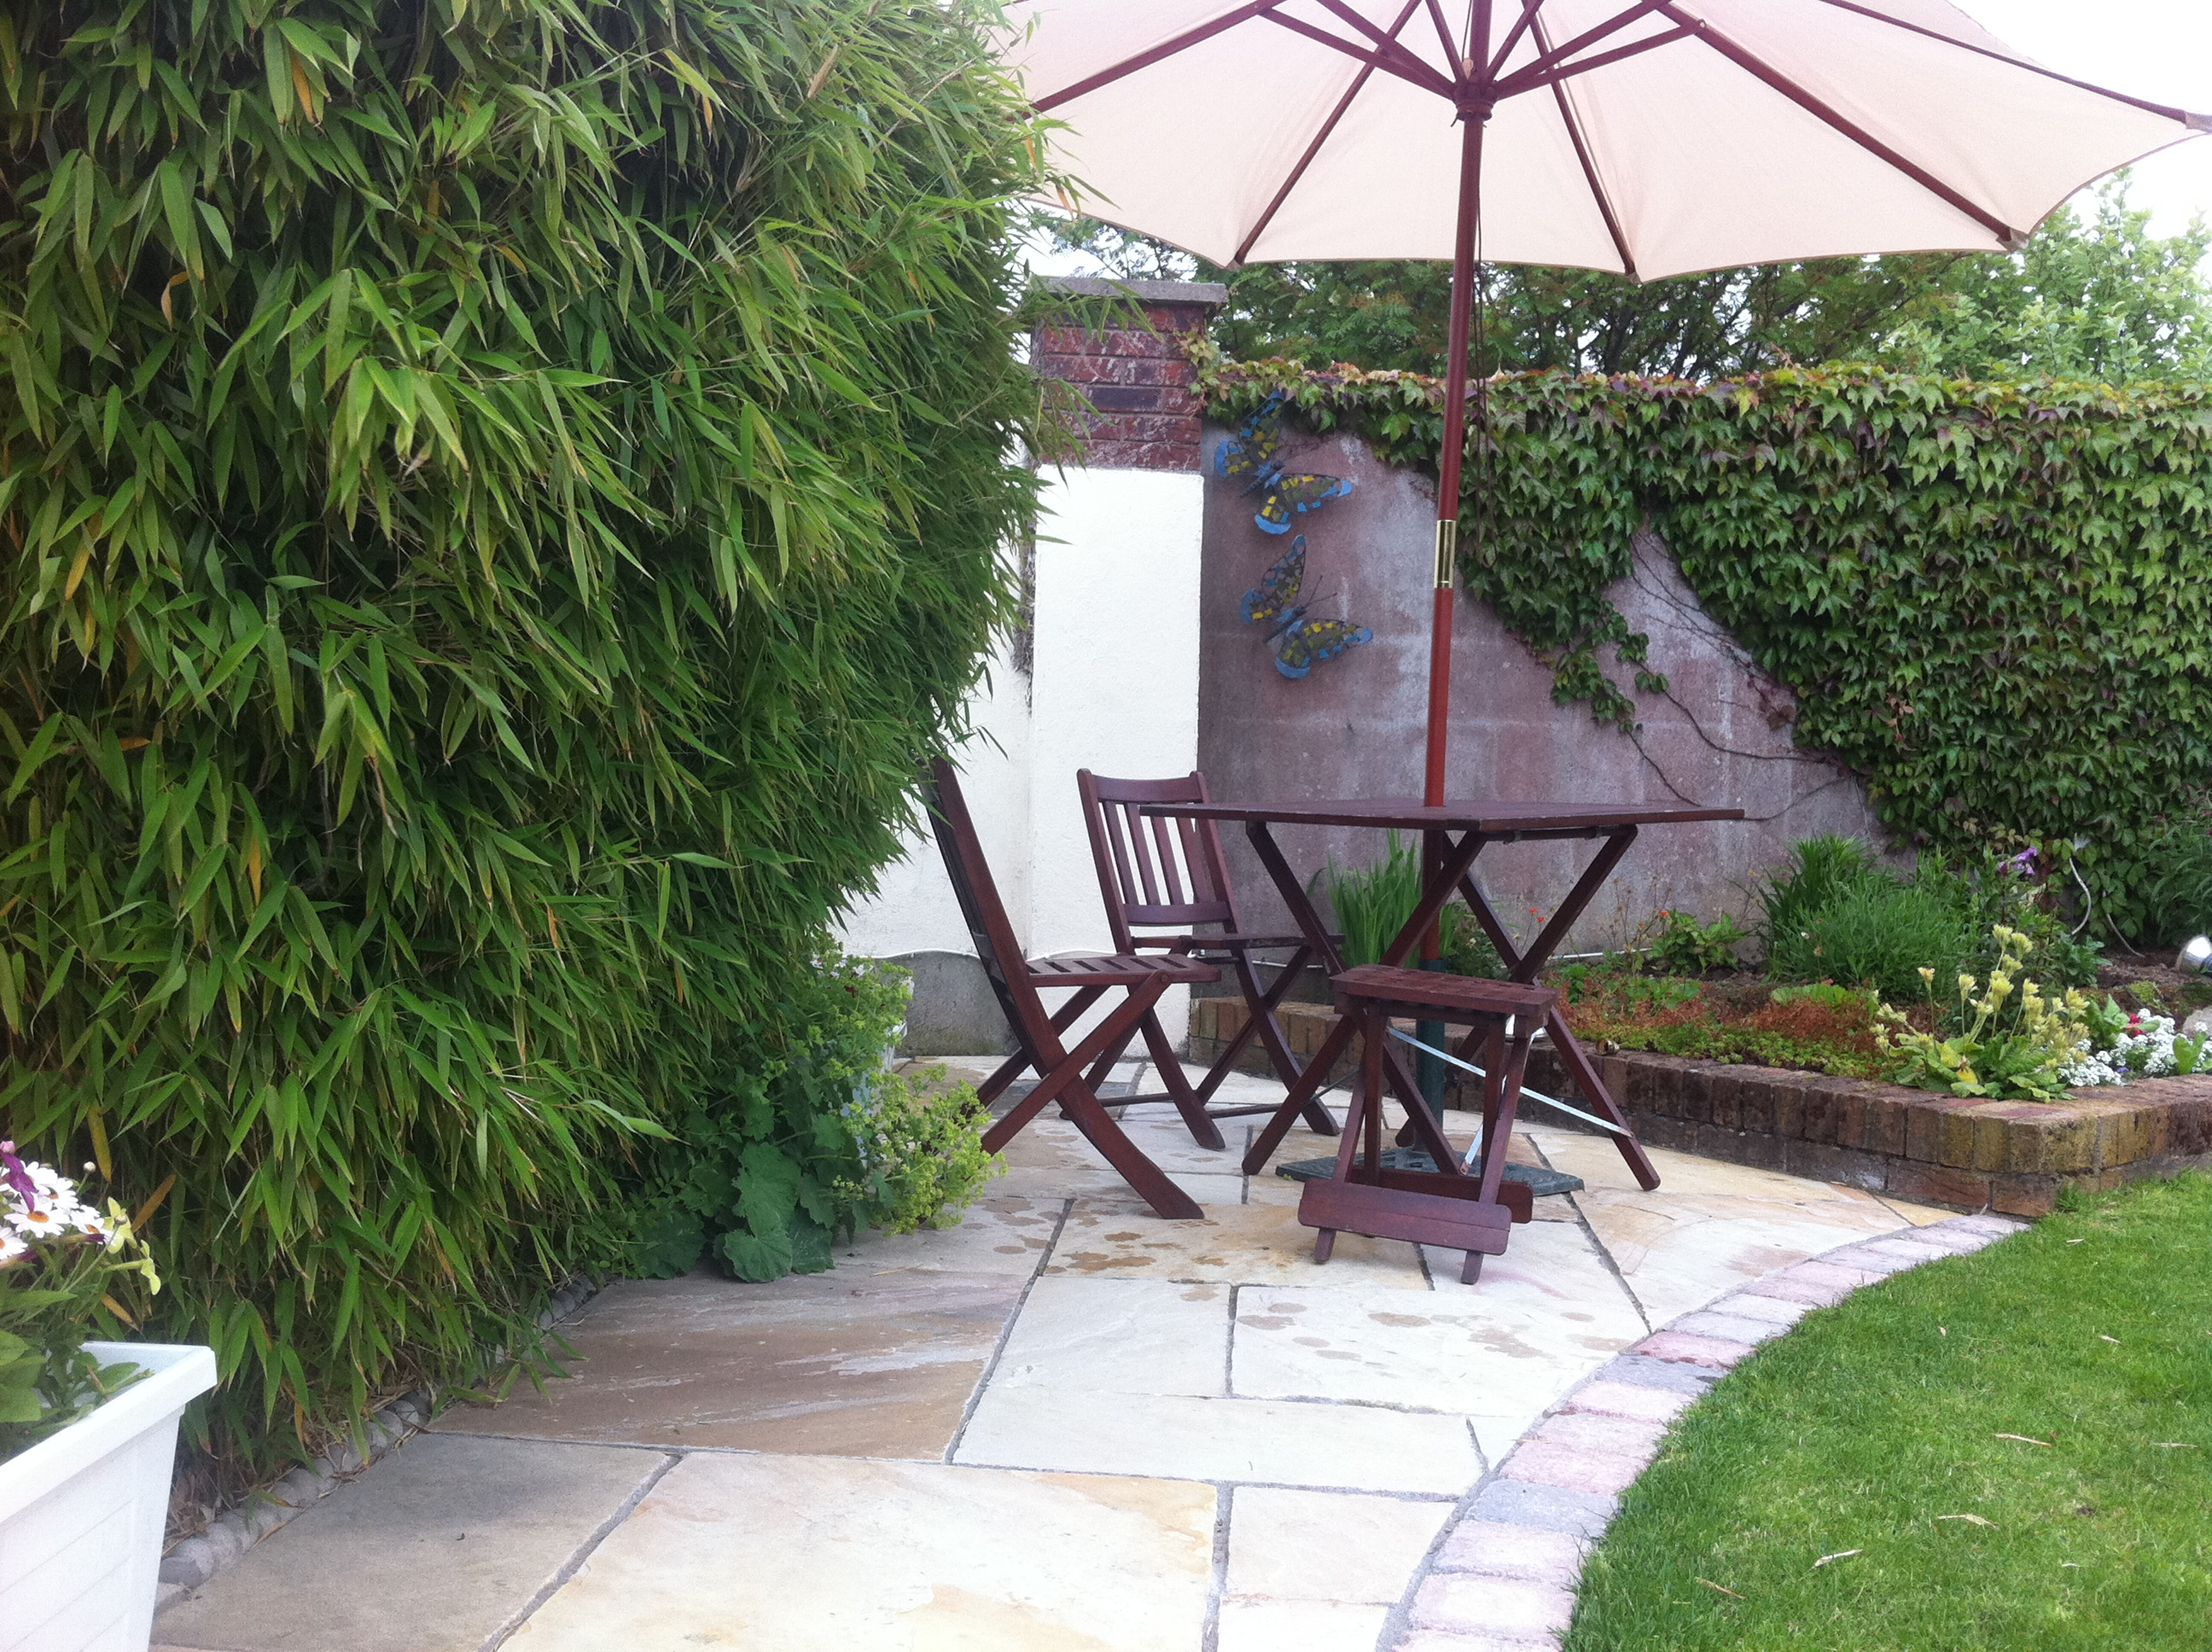 landscapers newbridge kildare landscapers newbridge kildare contemporary garden - Garden Design Kildare